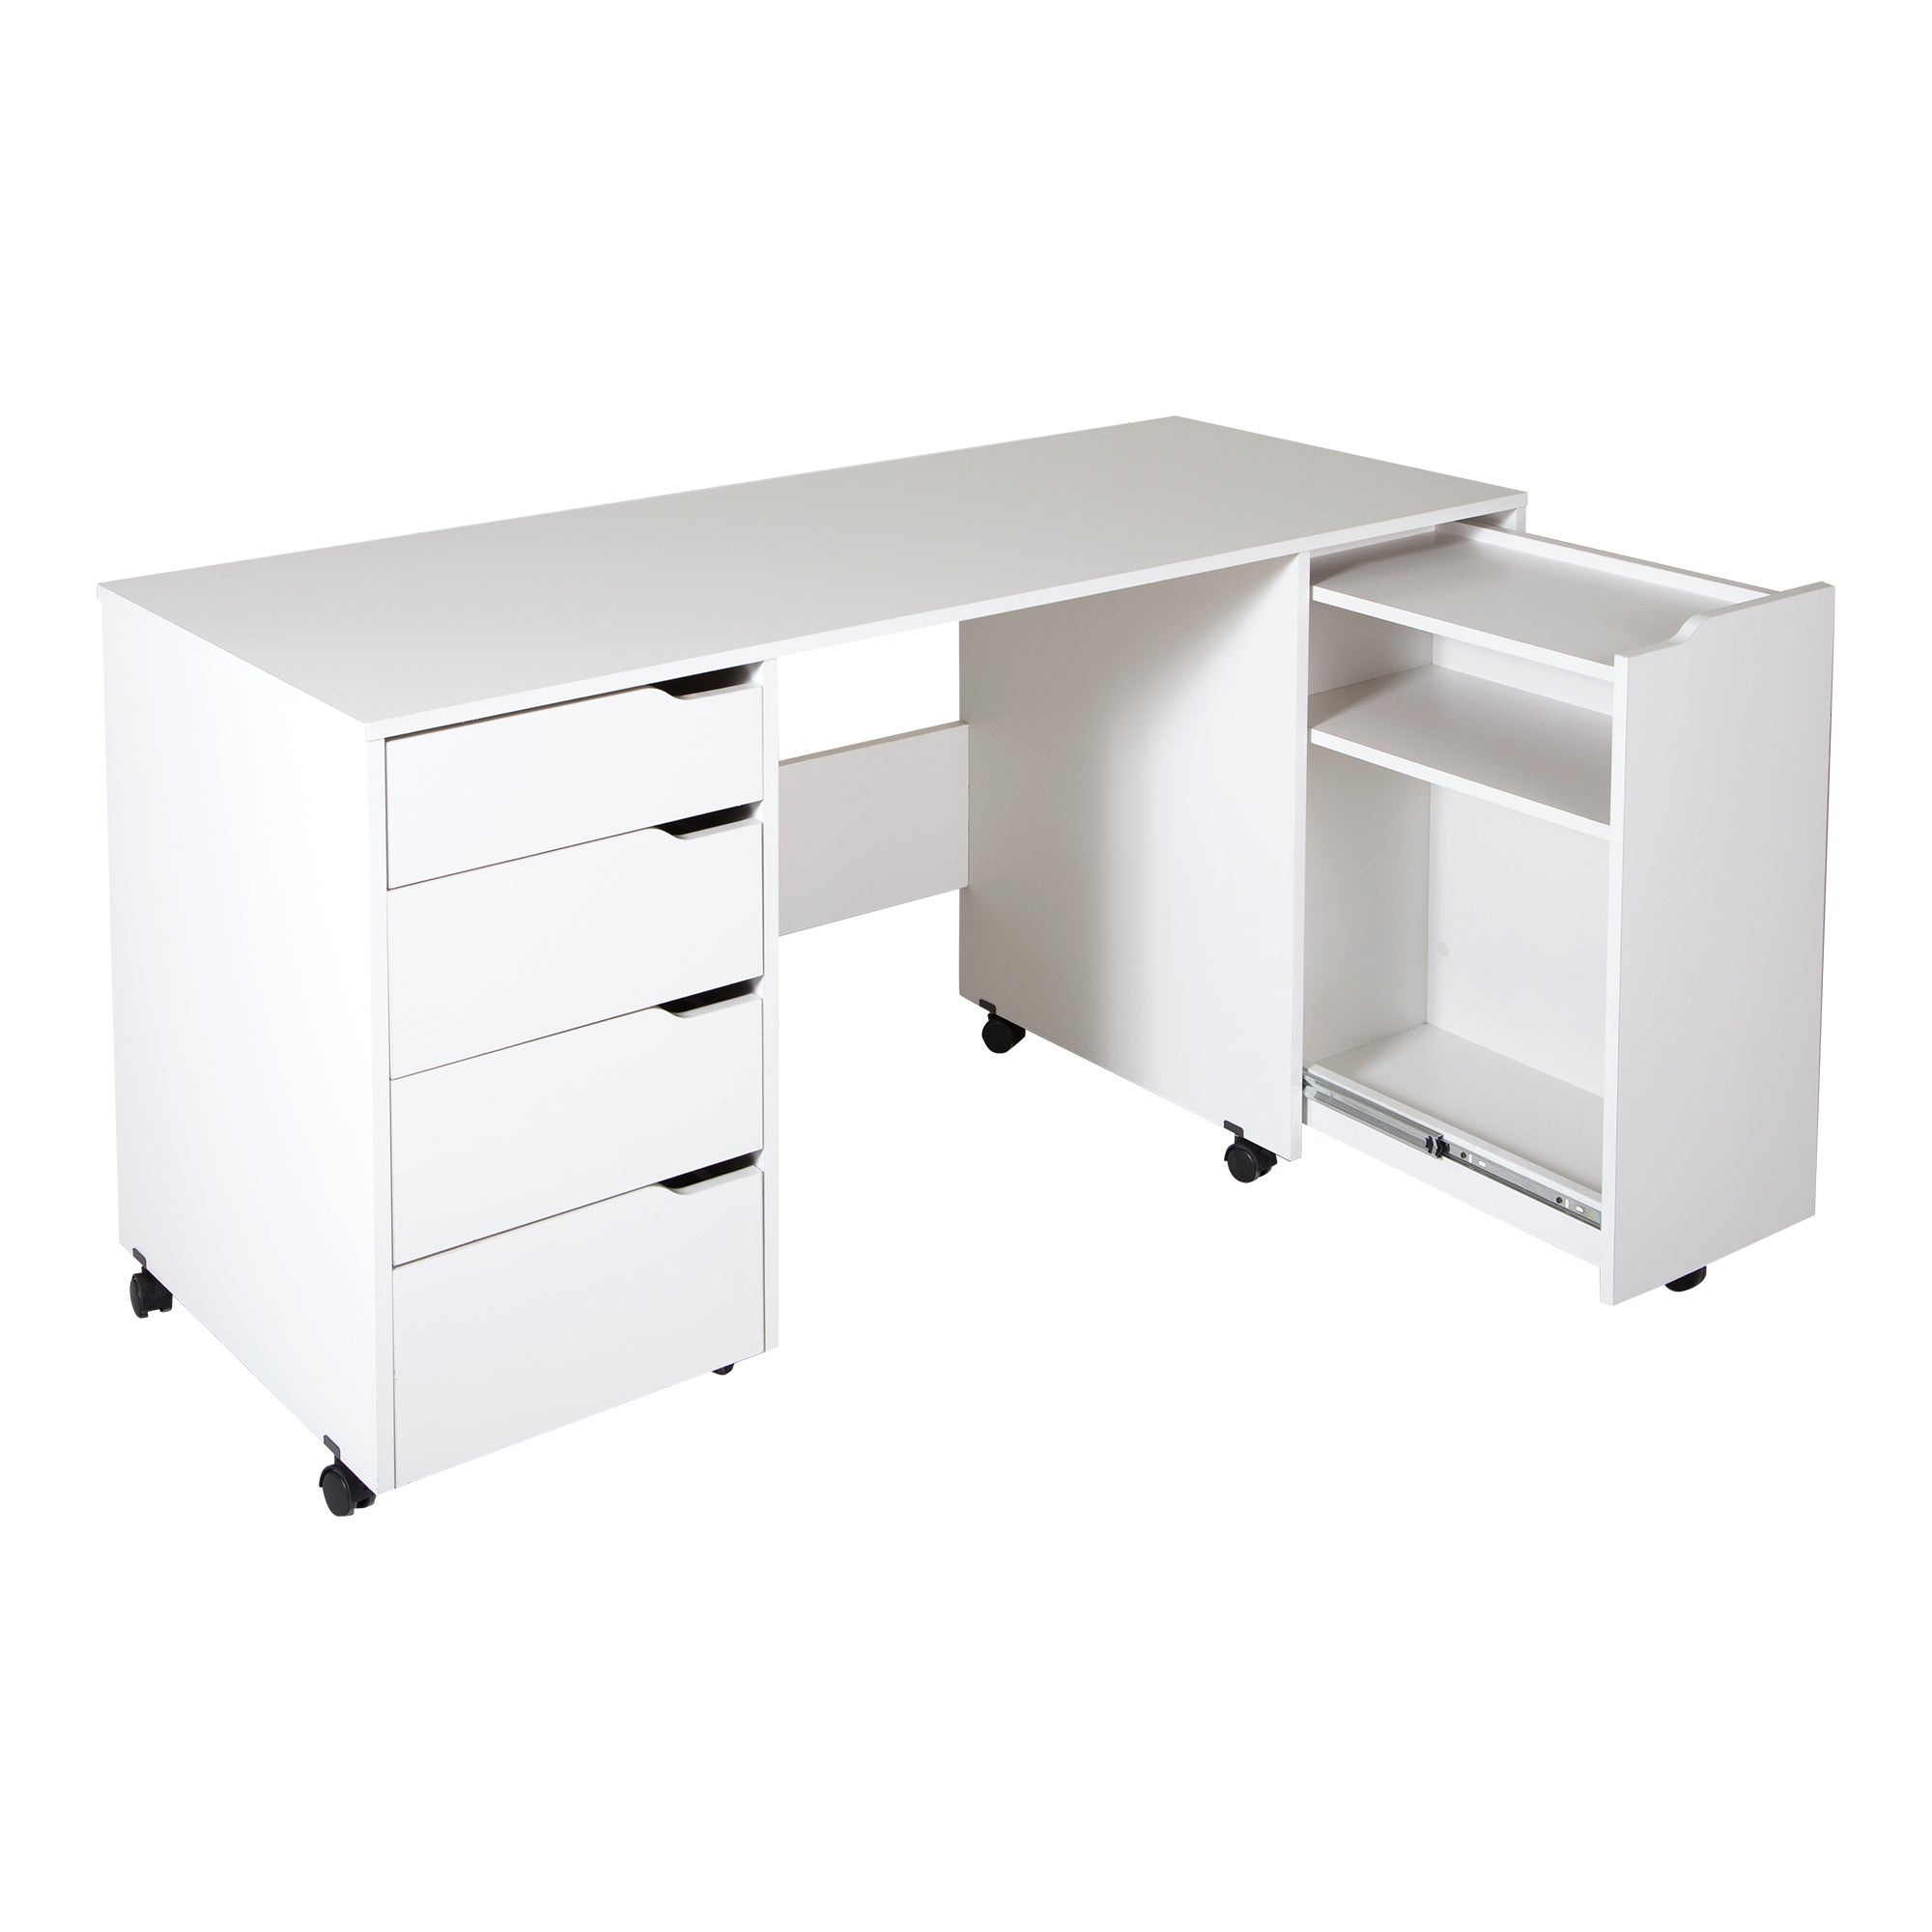 ana table craft white img